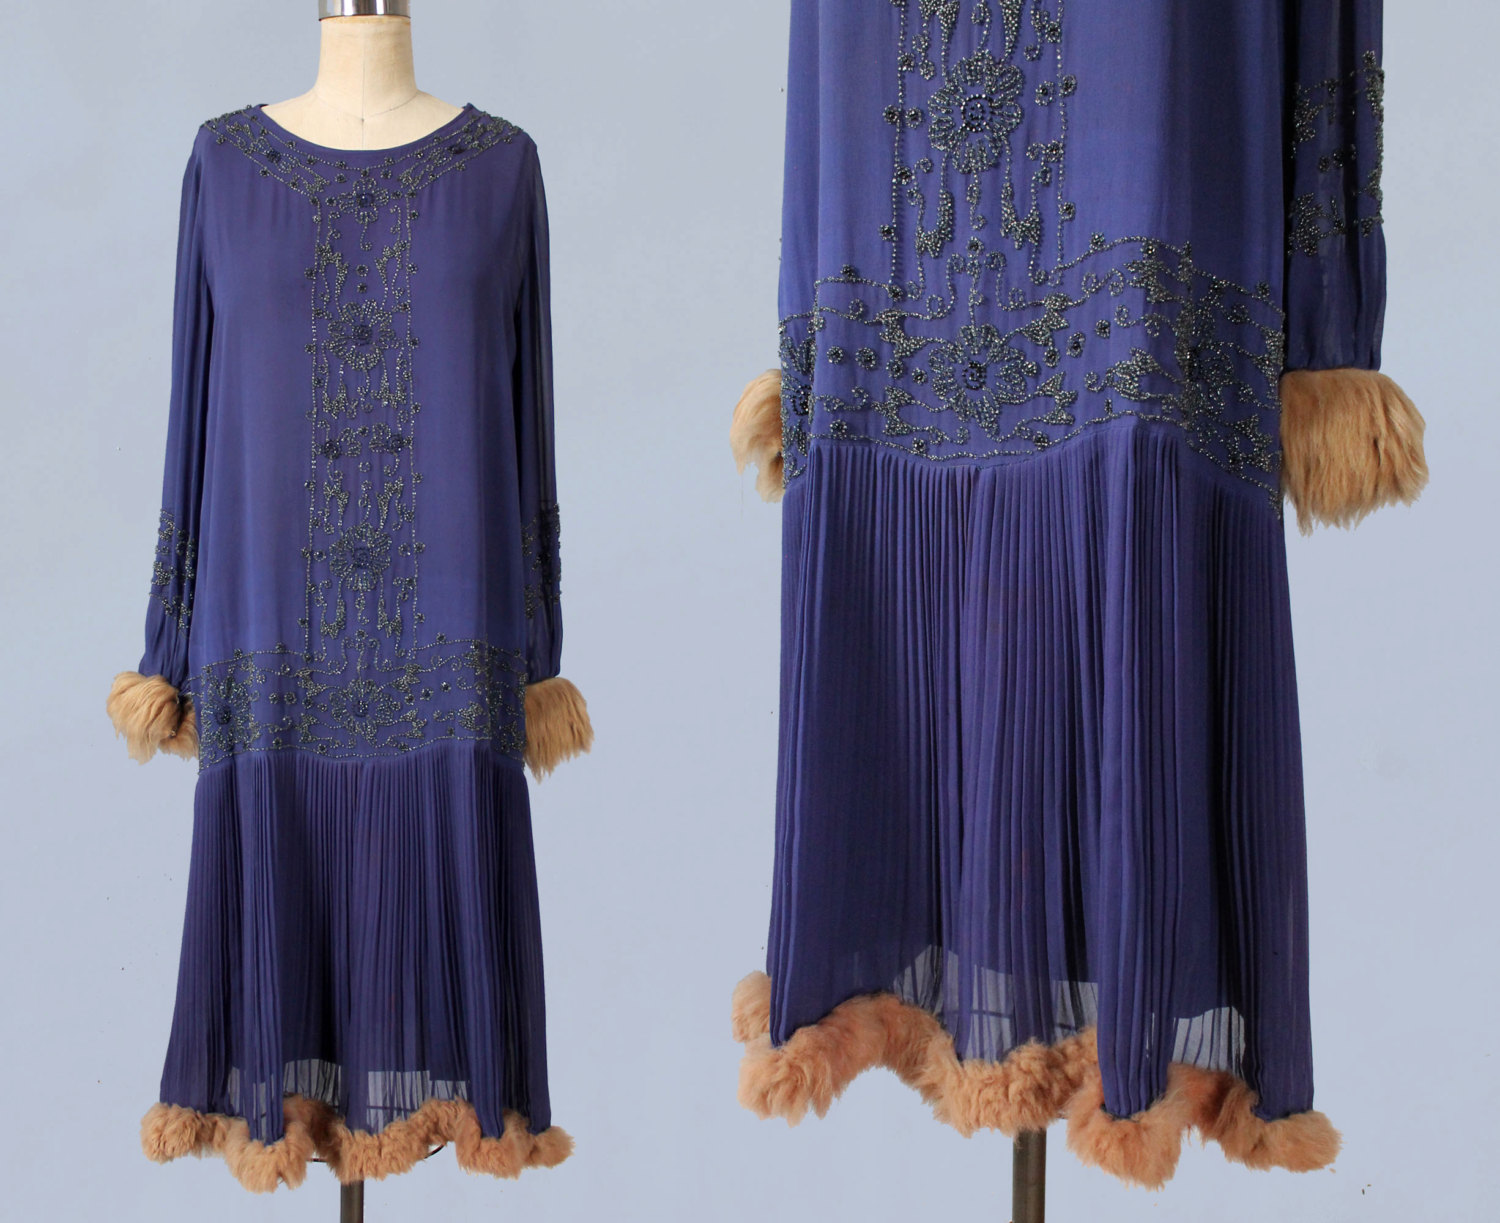 Purple silk dress with beading and fur trim. 1920s.